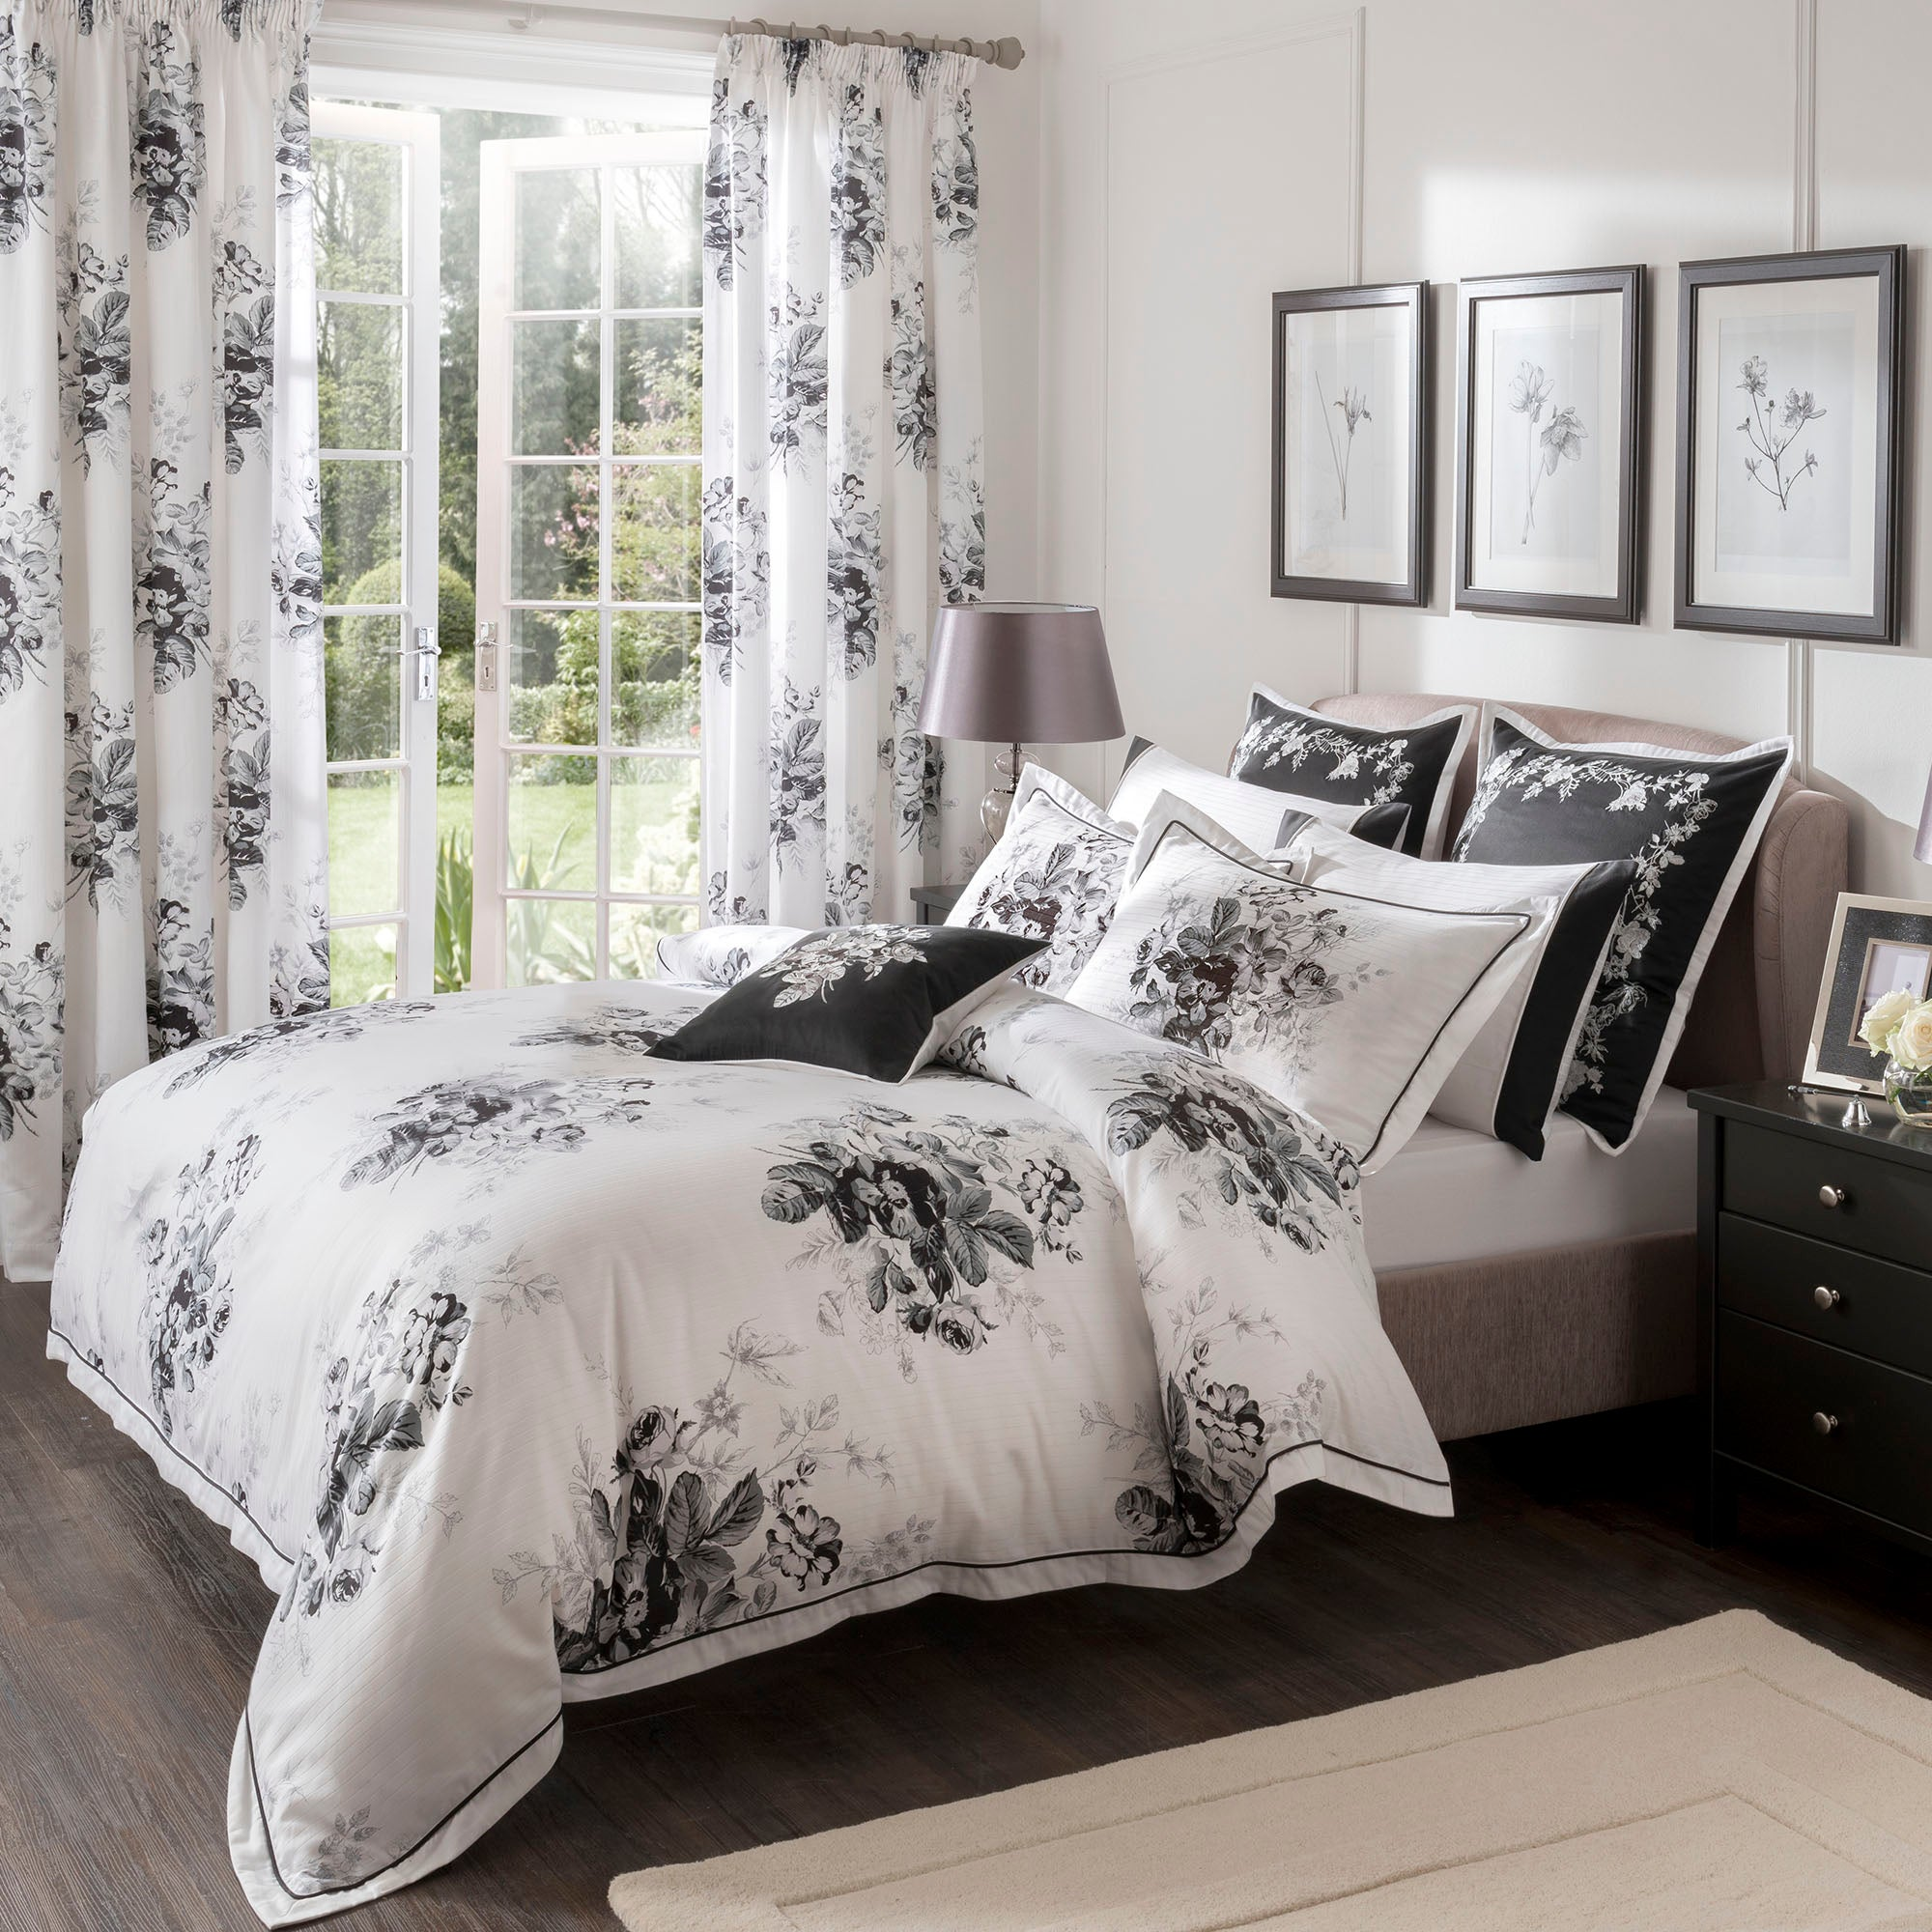 dorma black and white gardenia collection duvet cover dunelm. Black Bedroom Furniture Sets. Home Design Ideas